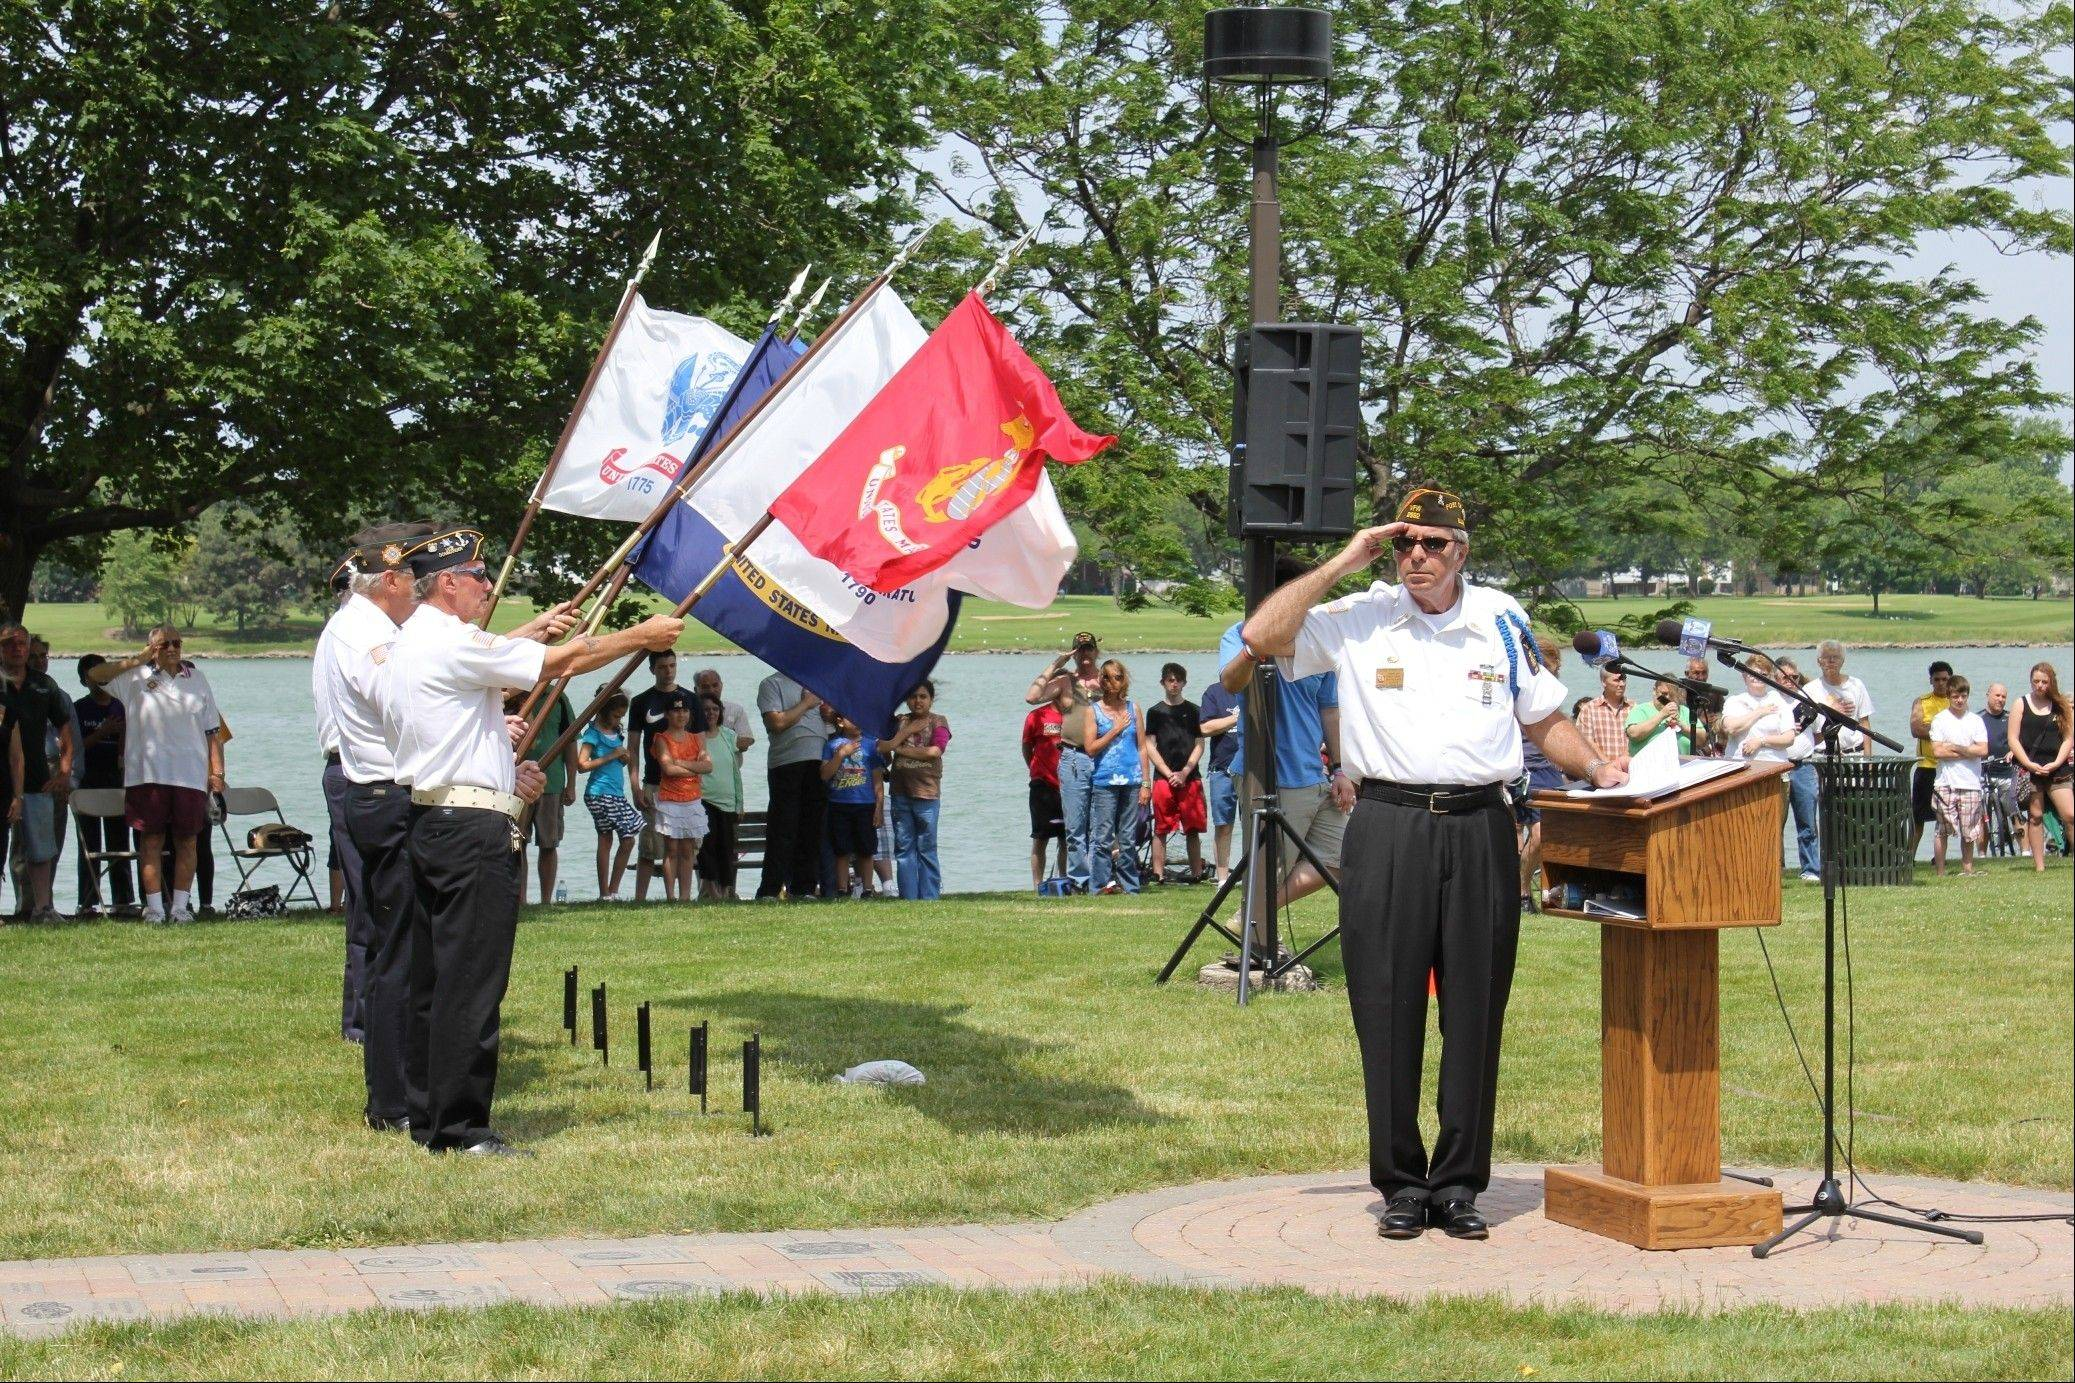 Des Plaines VFW Chaplain Steve Schaefer salutes the flag at the Des Plaines Memorial Day event. To view additional photographs visit desplaines.org/memorialday